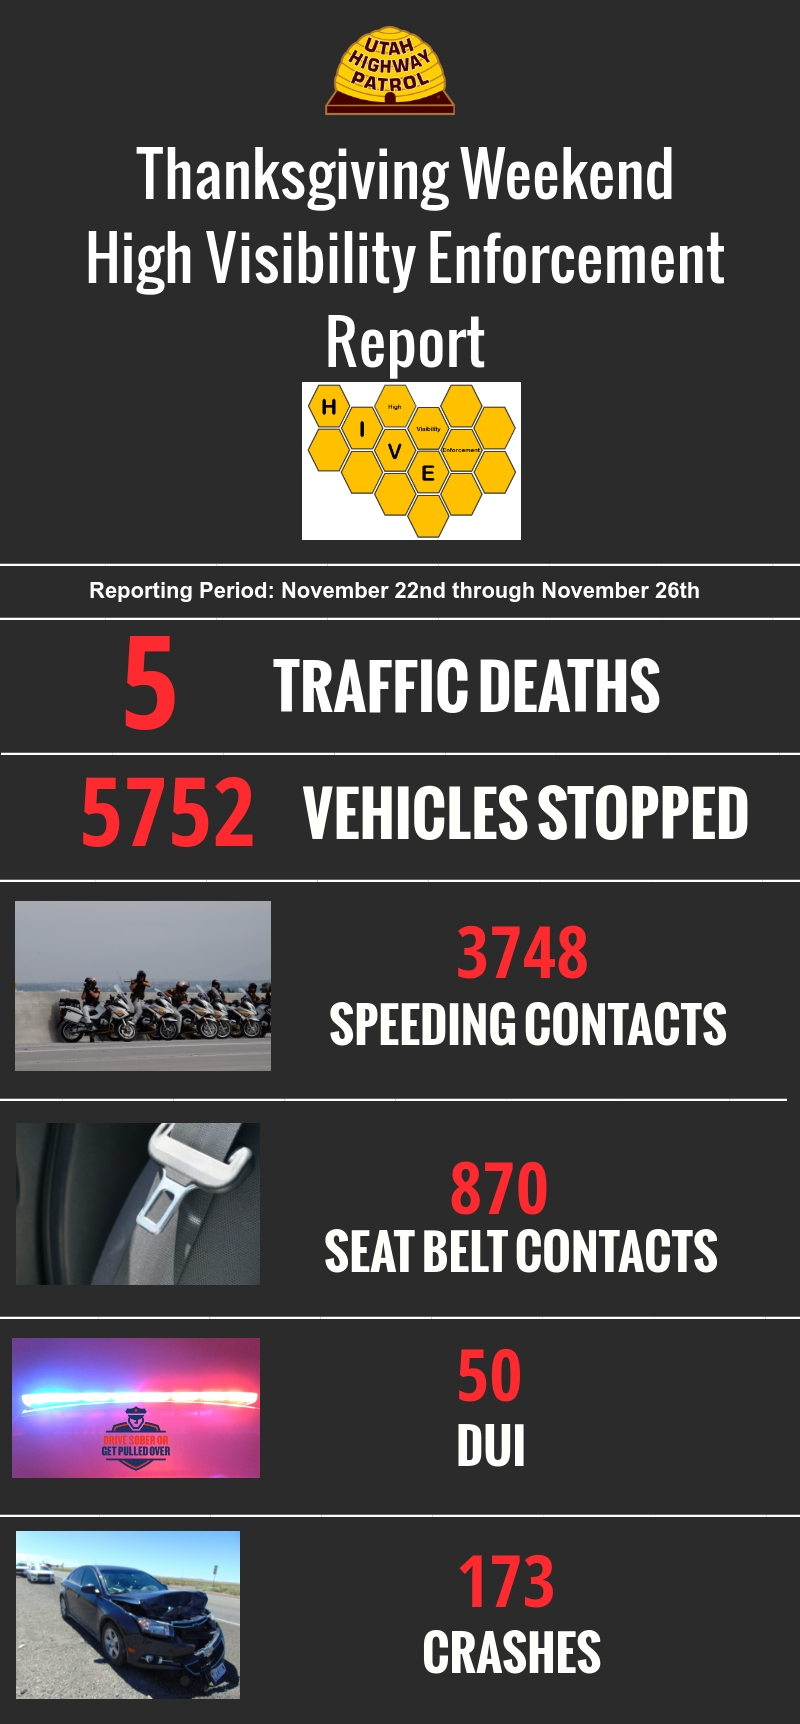 Results from UHP's Thanksgiving weekend enforcement - 5 traffic deaths, 5752 vehicles stopped, 3748 speeding contacts, 870 seat belt contacts, 50 DUI and 173 crashes